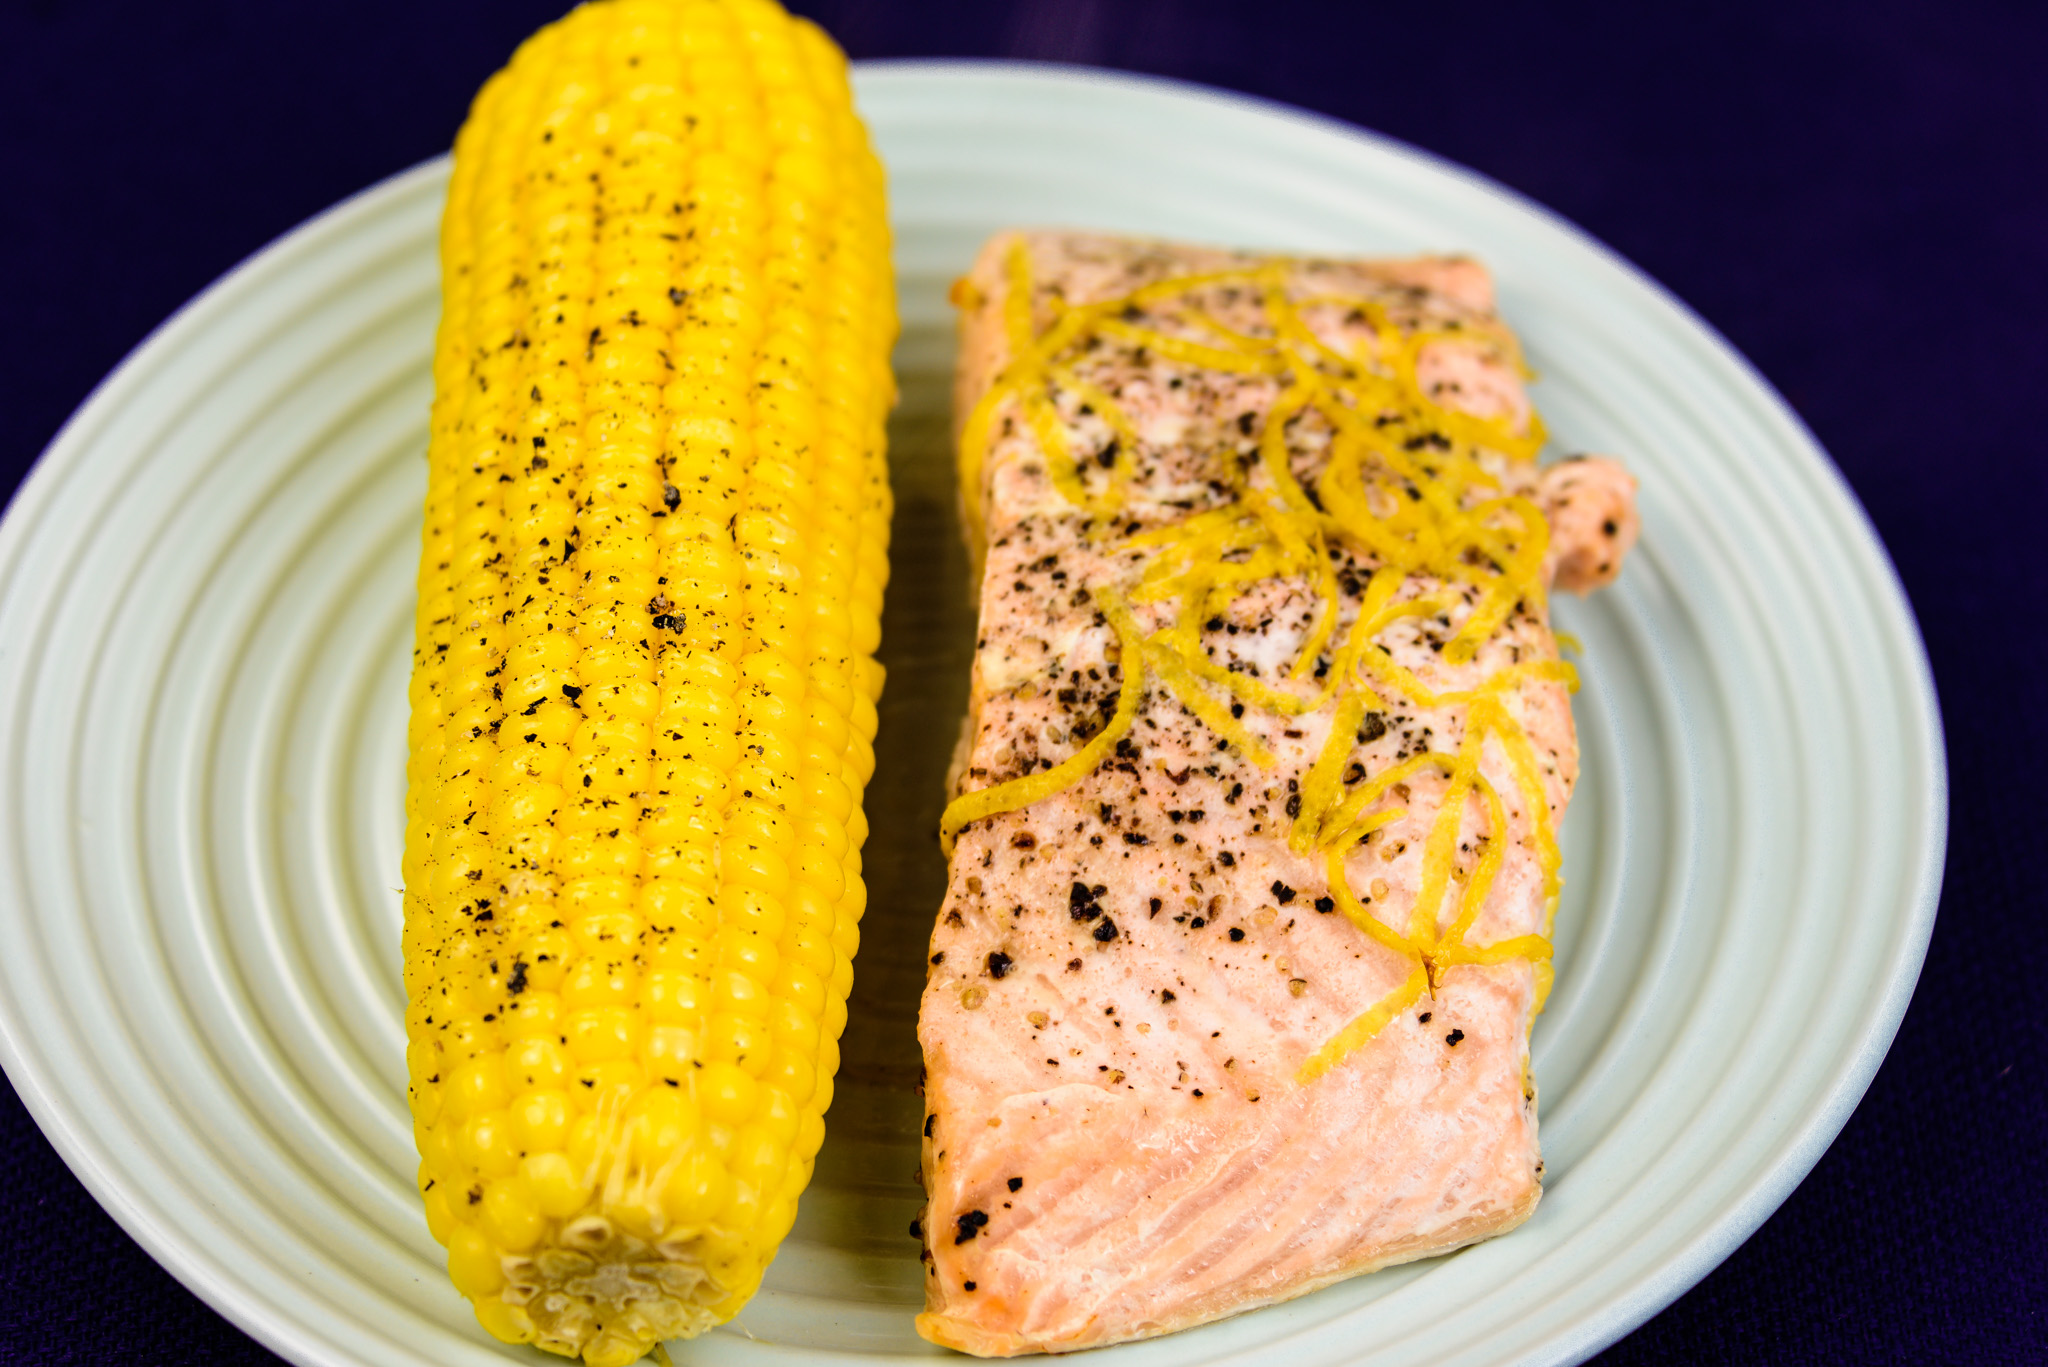 Monday dinner. Salmon cooked in paper with sweet corn on the cob.